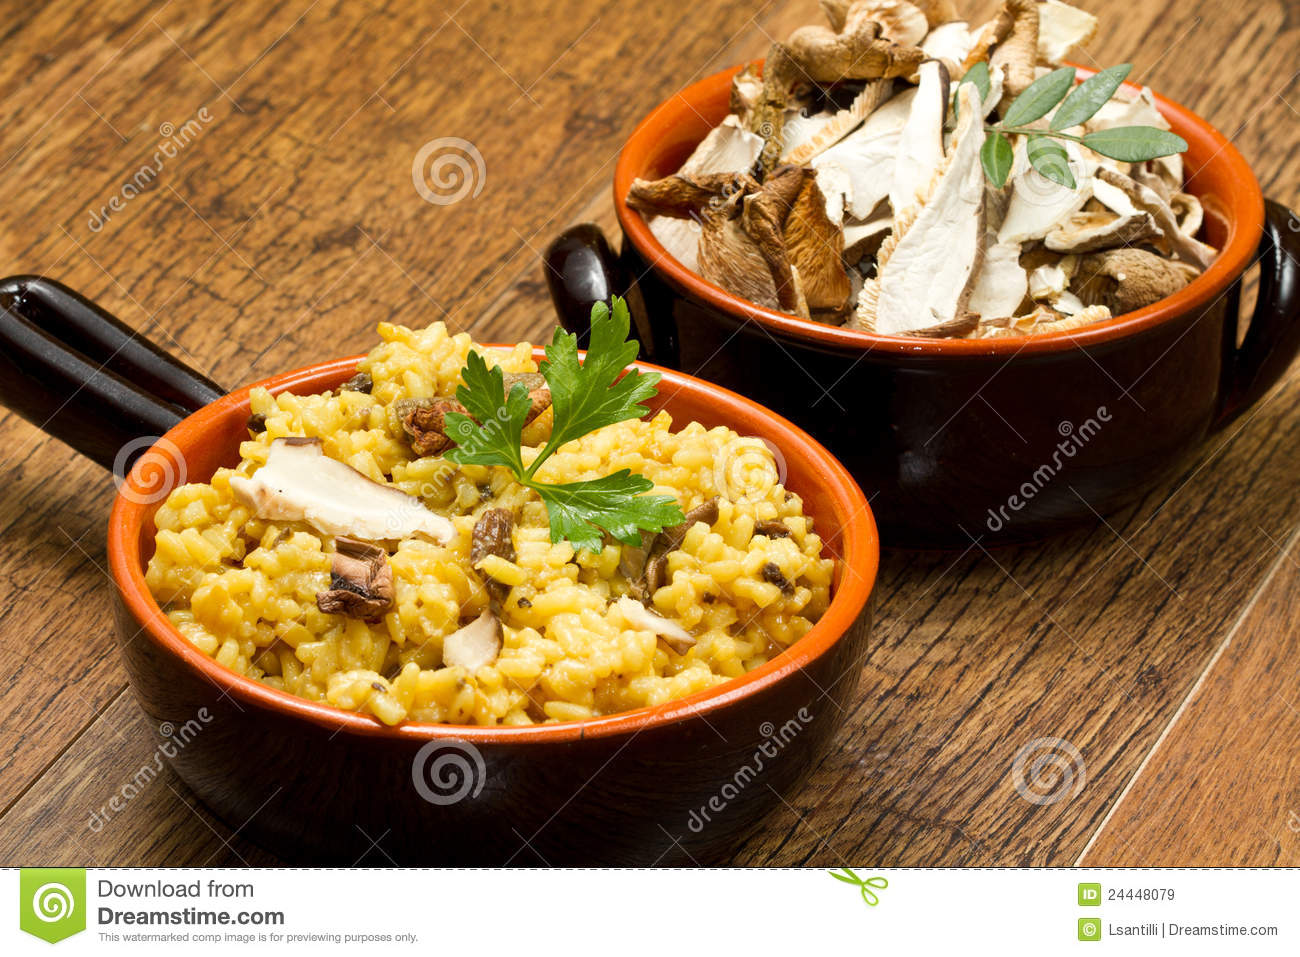 Risotto With Saffron And Mushrooms Royalty Free Stock Images - Image ...